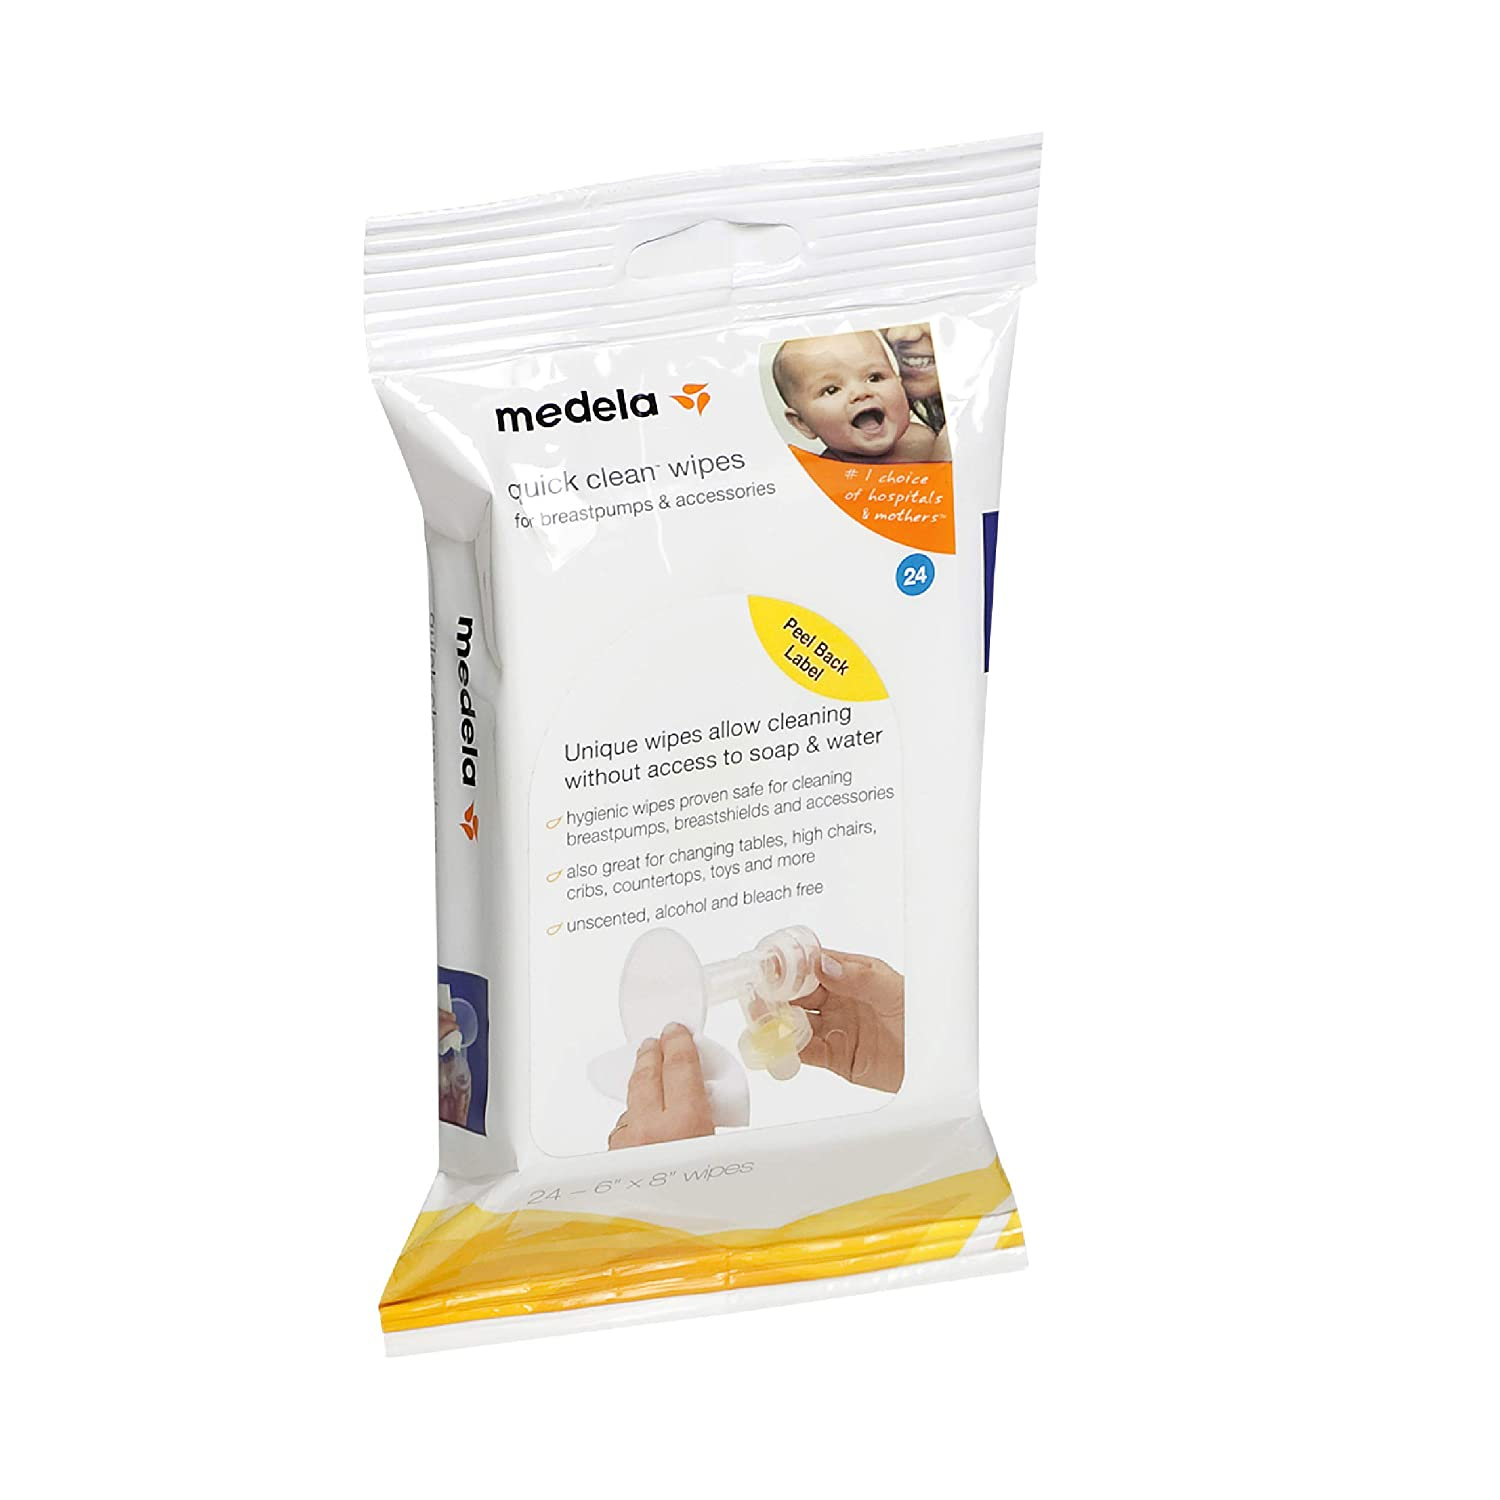 Cribs and Countertops Hygienic Wipes Safe for Cleaning High Chairs Convenient Portable Cleaning Tables 40 Individually Packed Wipes Medela Quick Clean Breast Pump and Accessory Wipes